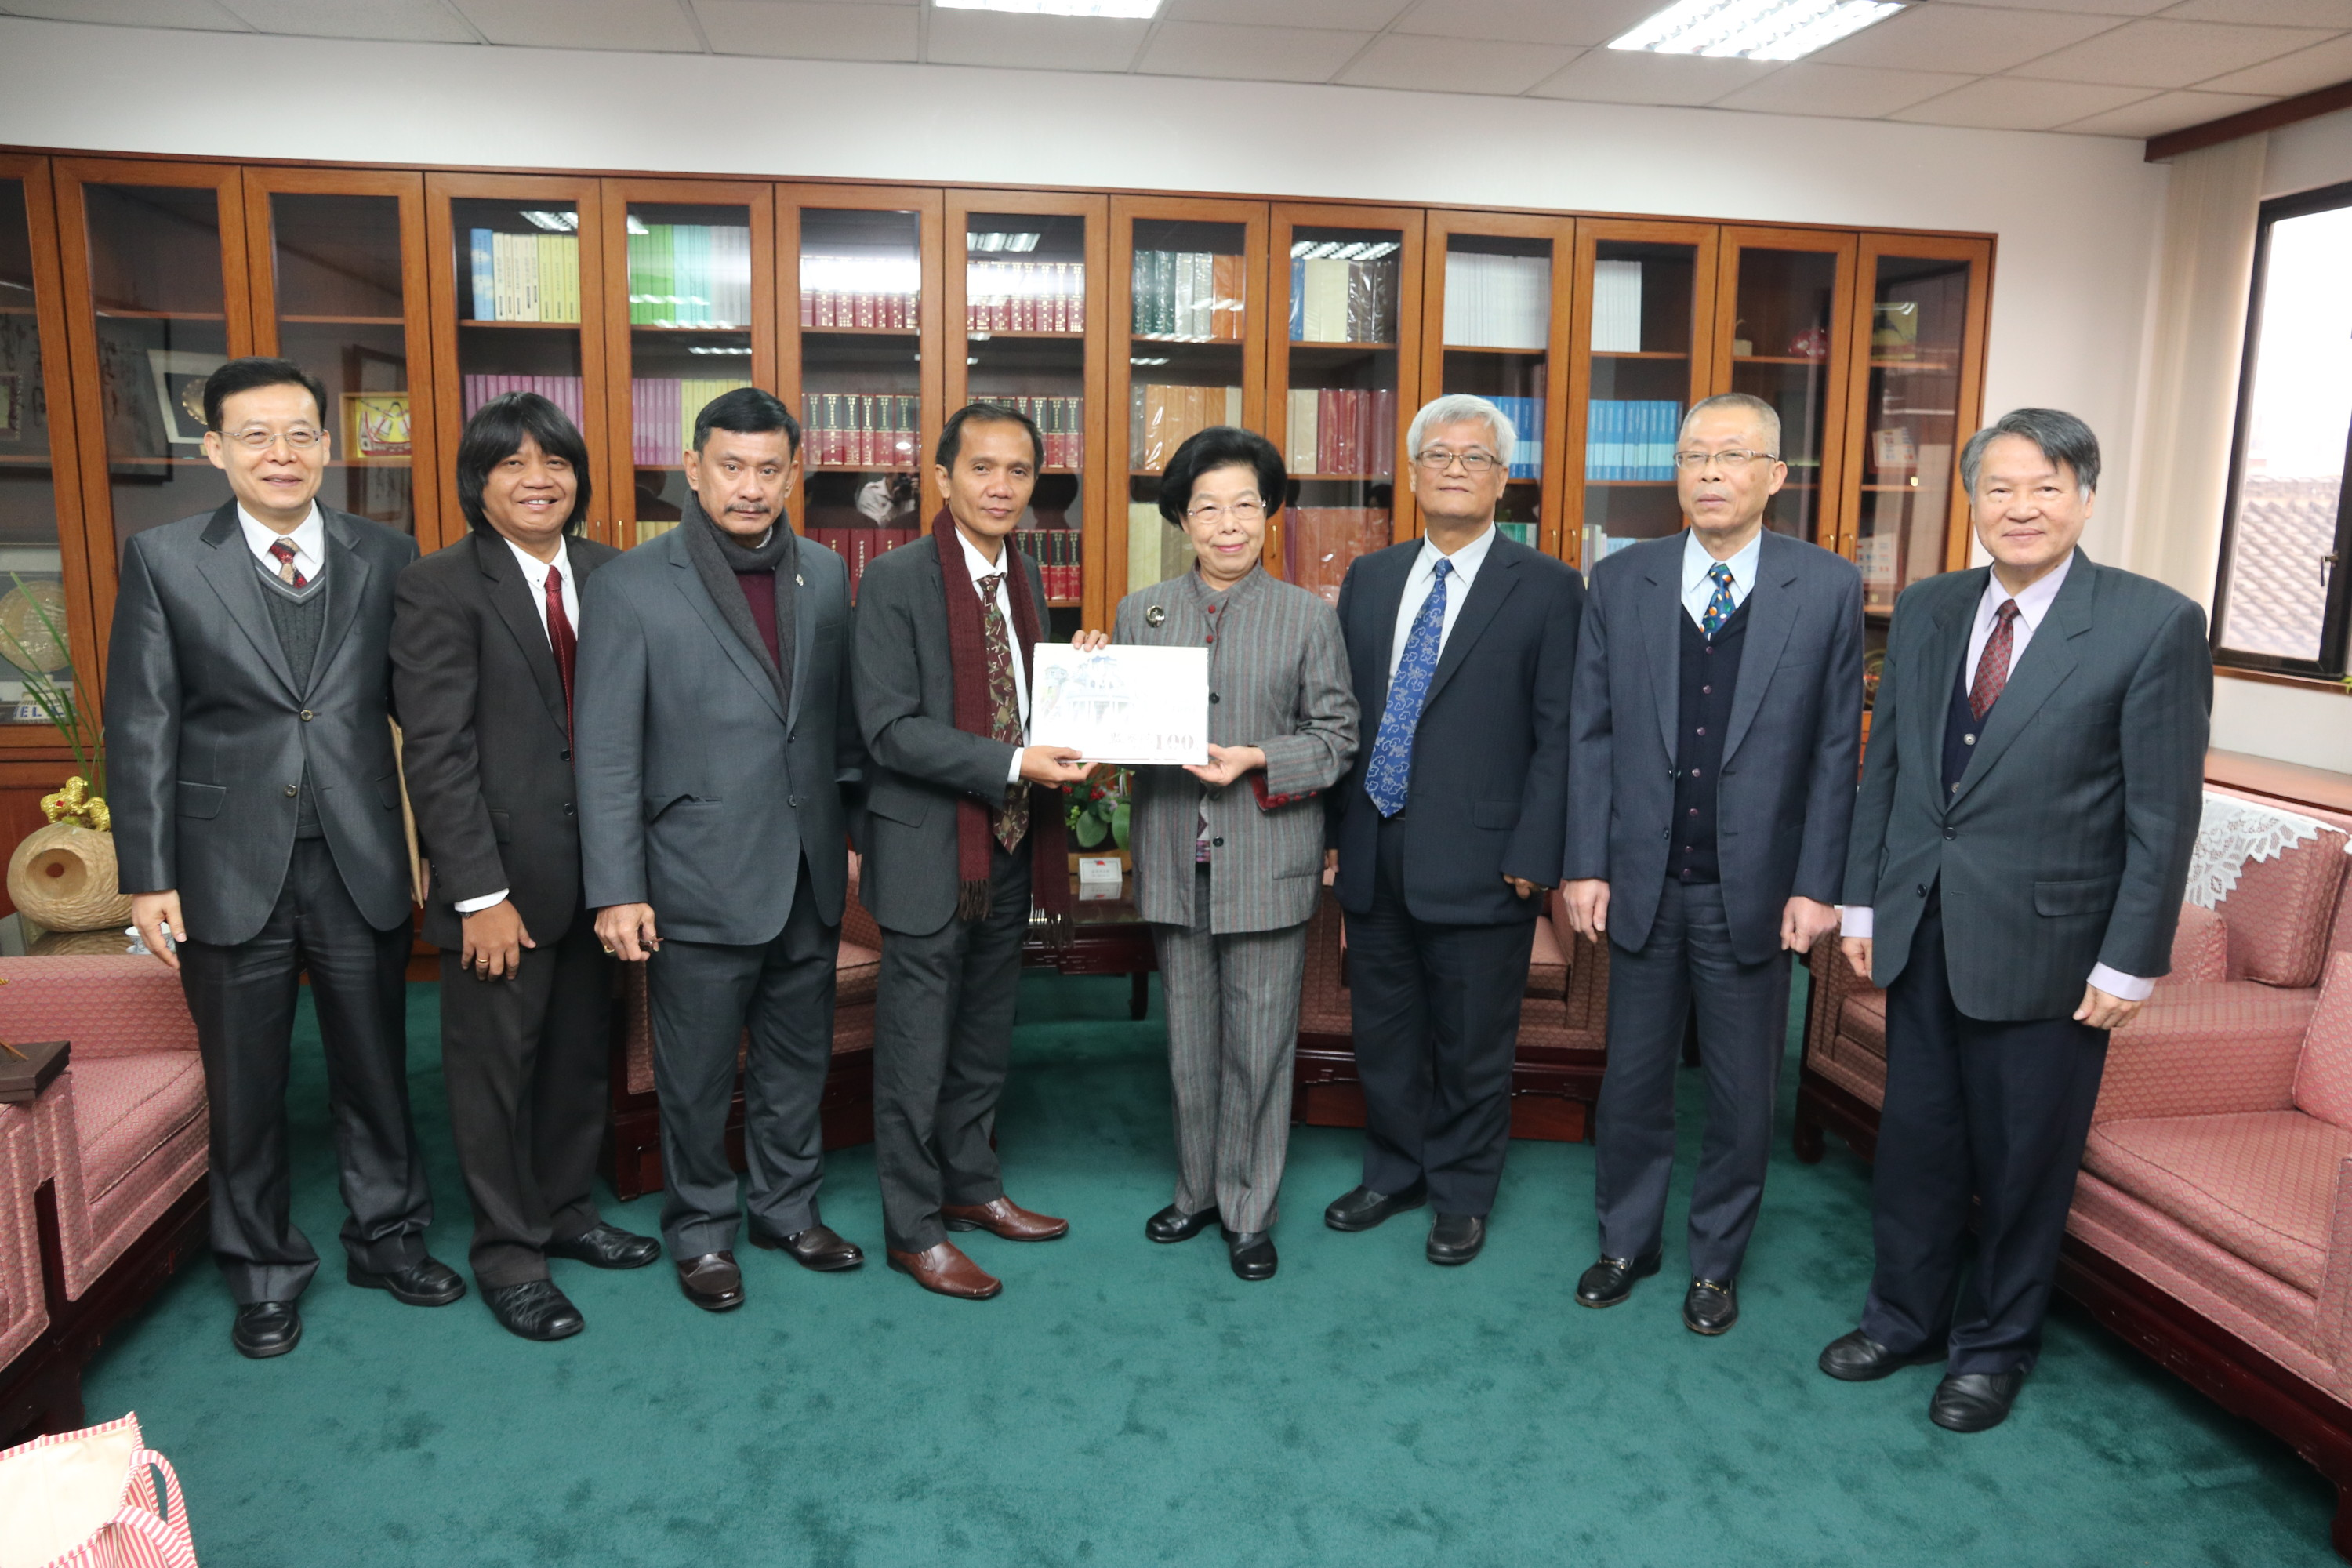 Chairperson of Indonesian National Human Rights Commission visits the Control Yuan